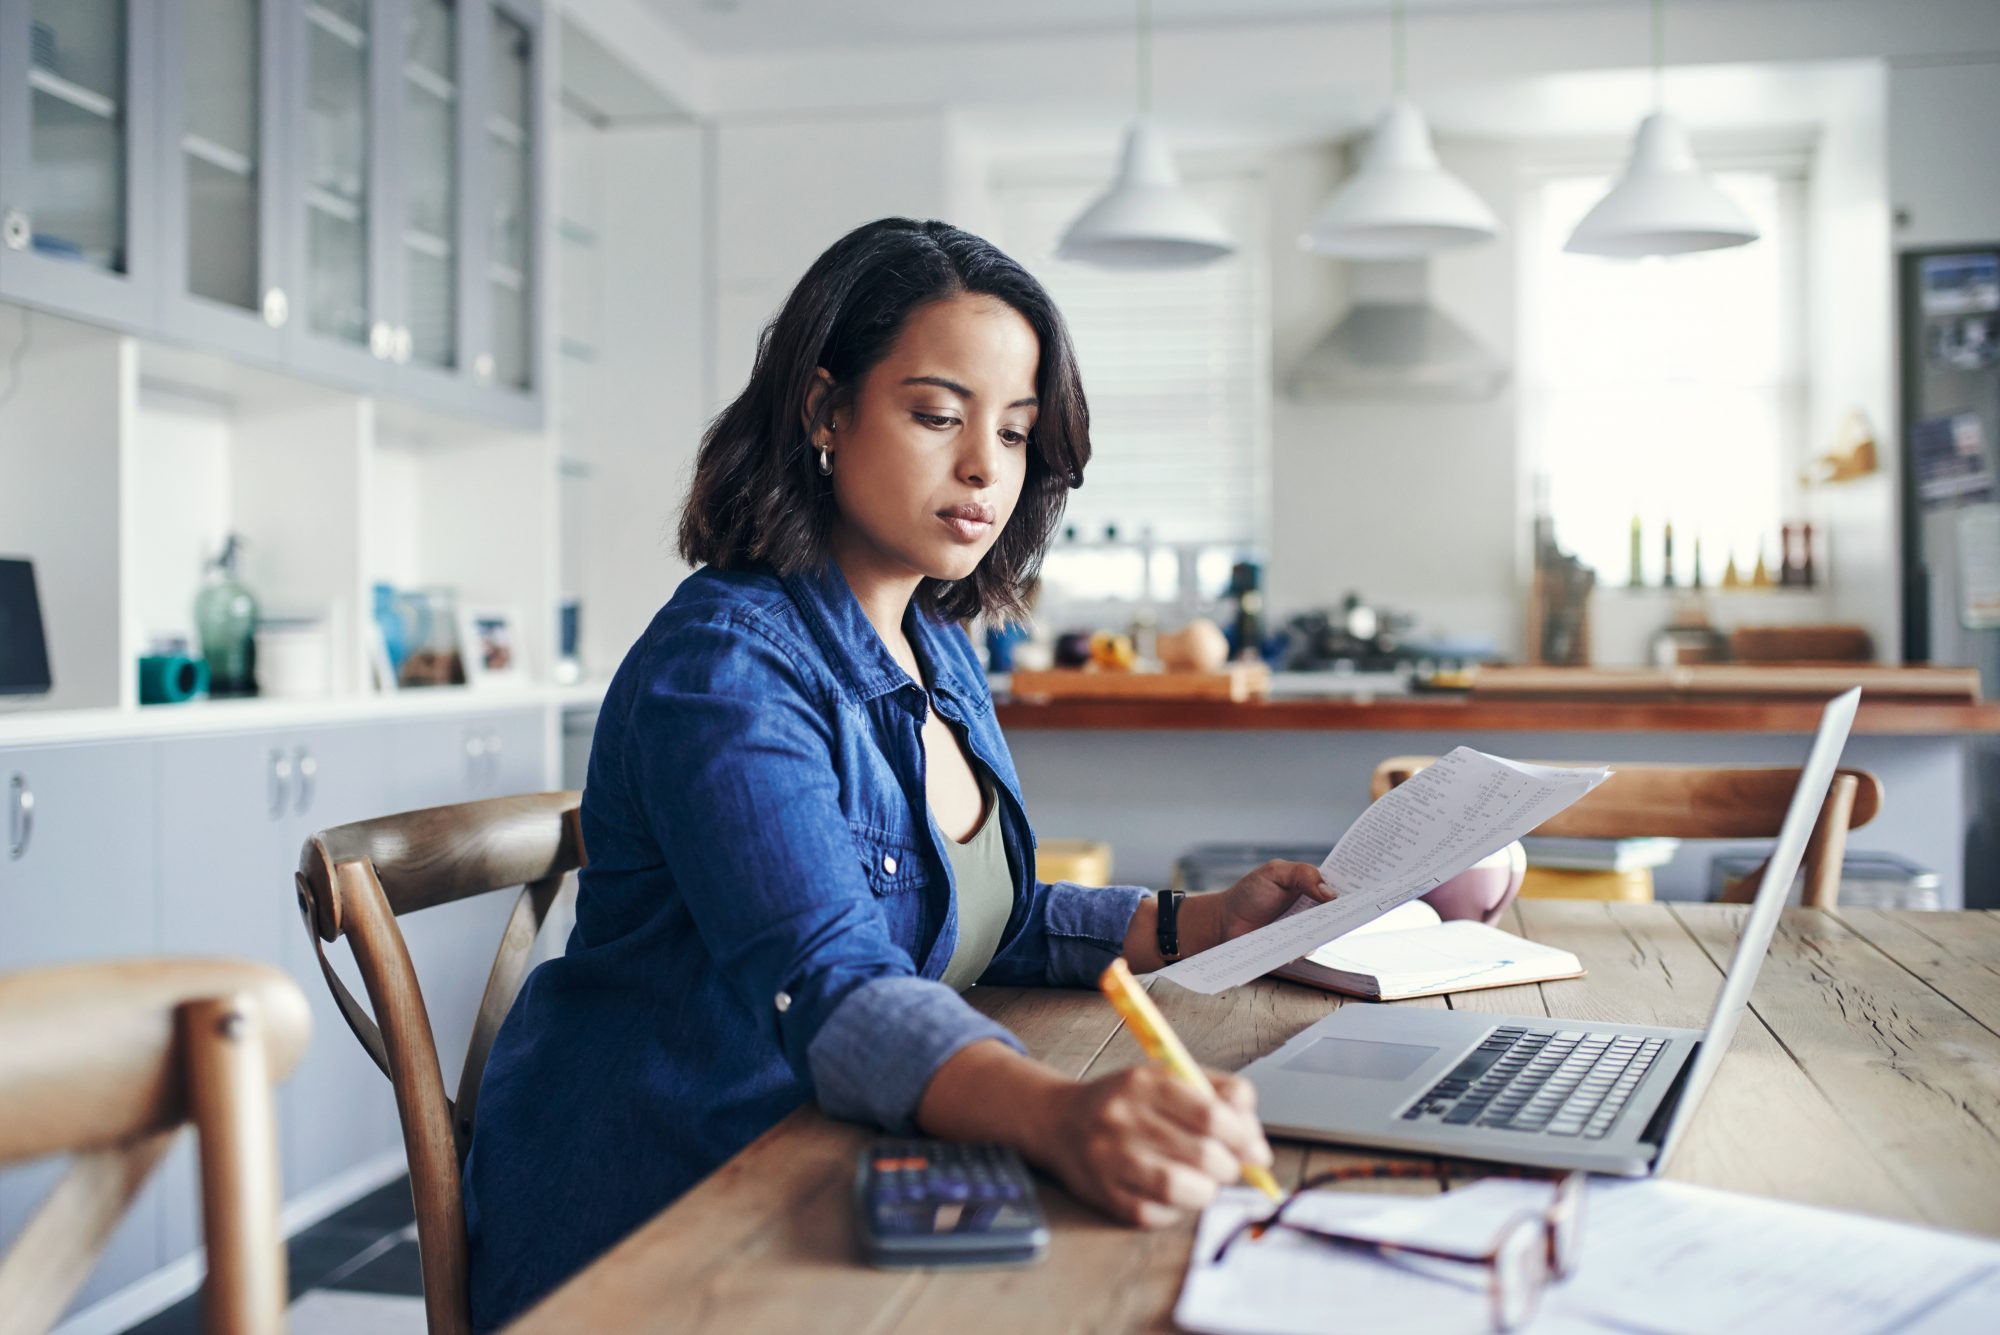 how women's finances changed during panemic